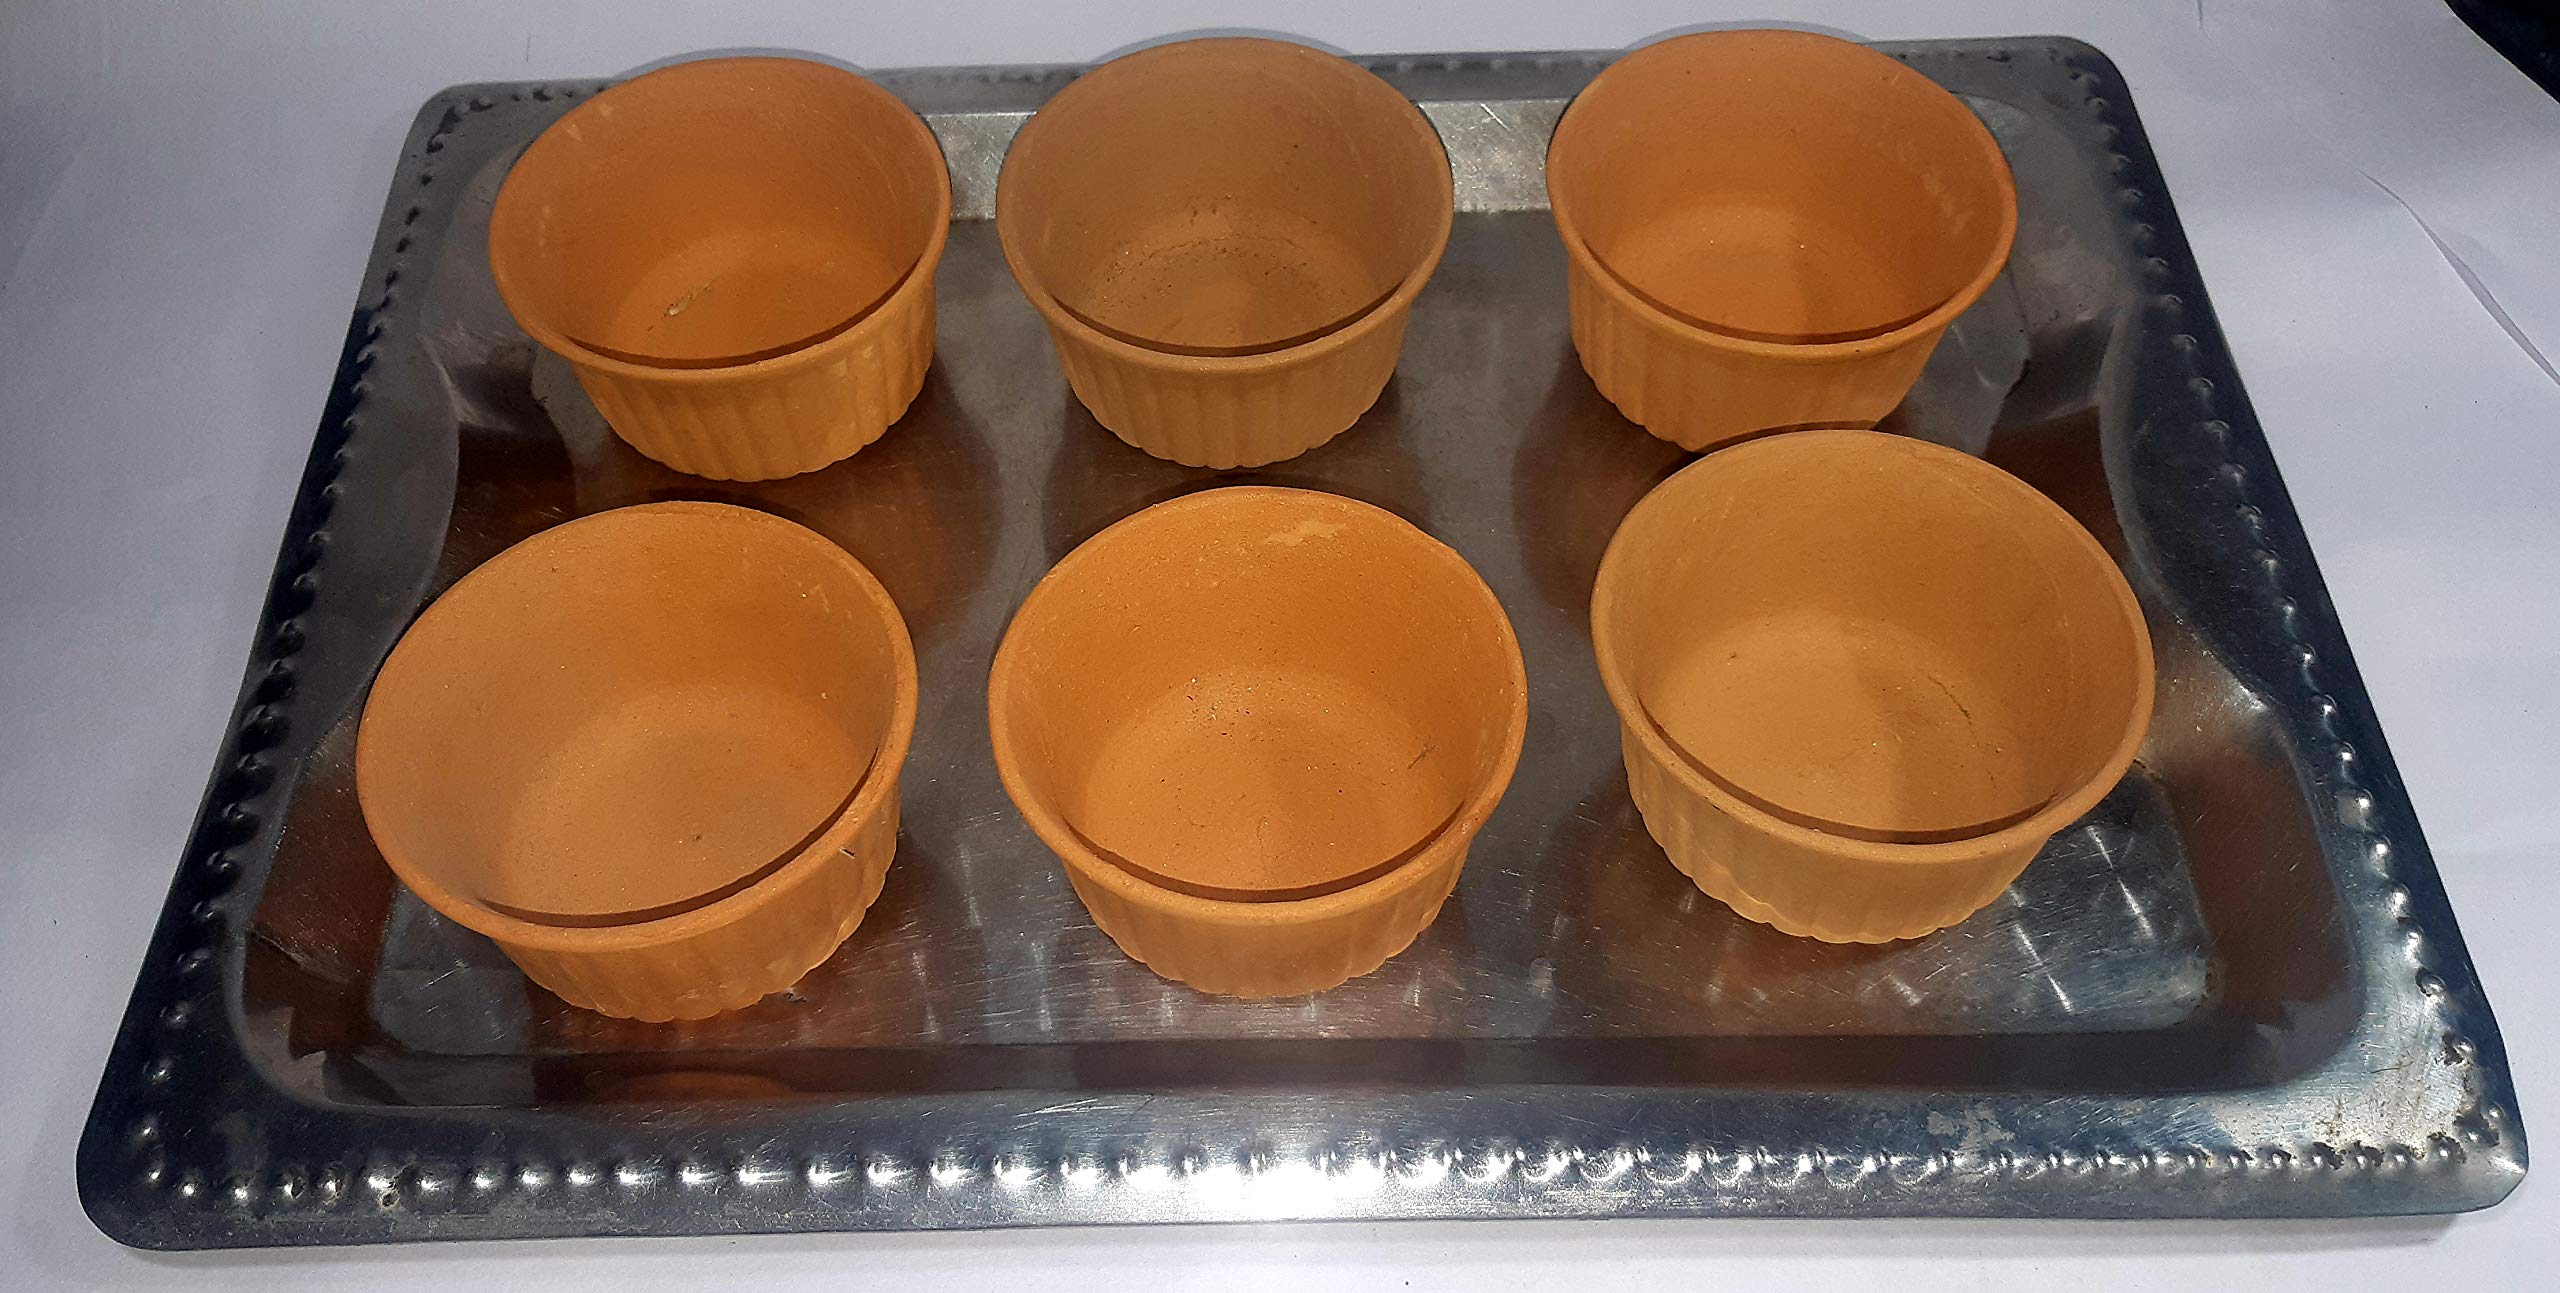 BS NATURAL MITTI Small KATORI/Bowl for Dinner Table/Breakfast/Decoration (Set of SIX)